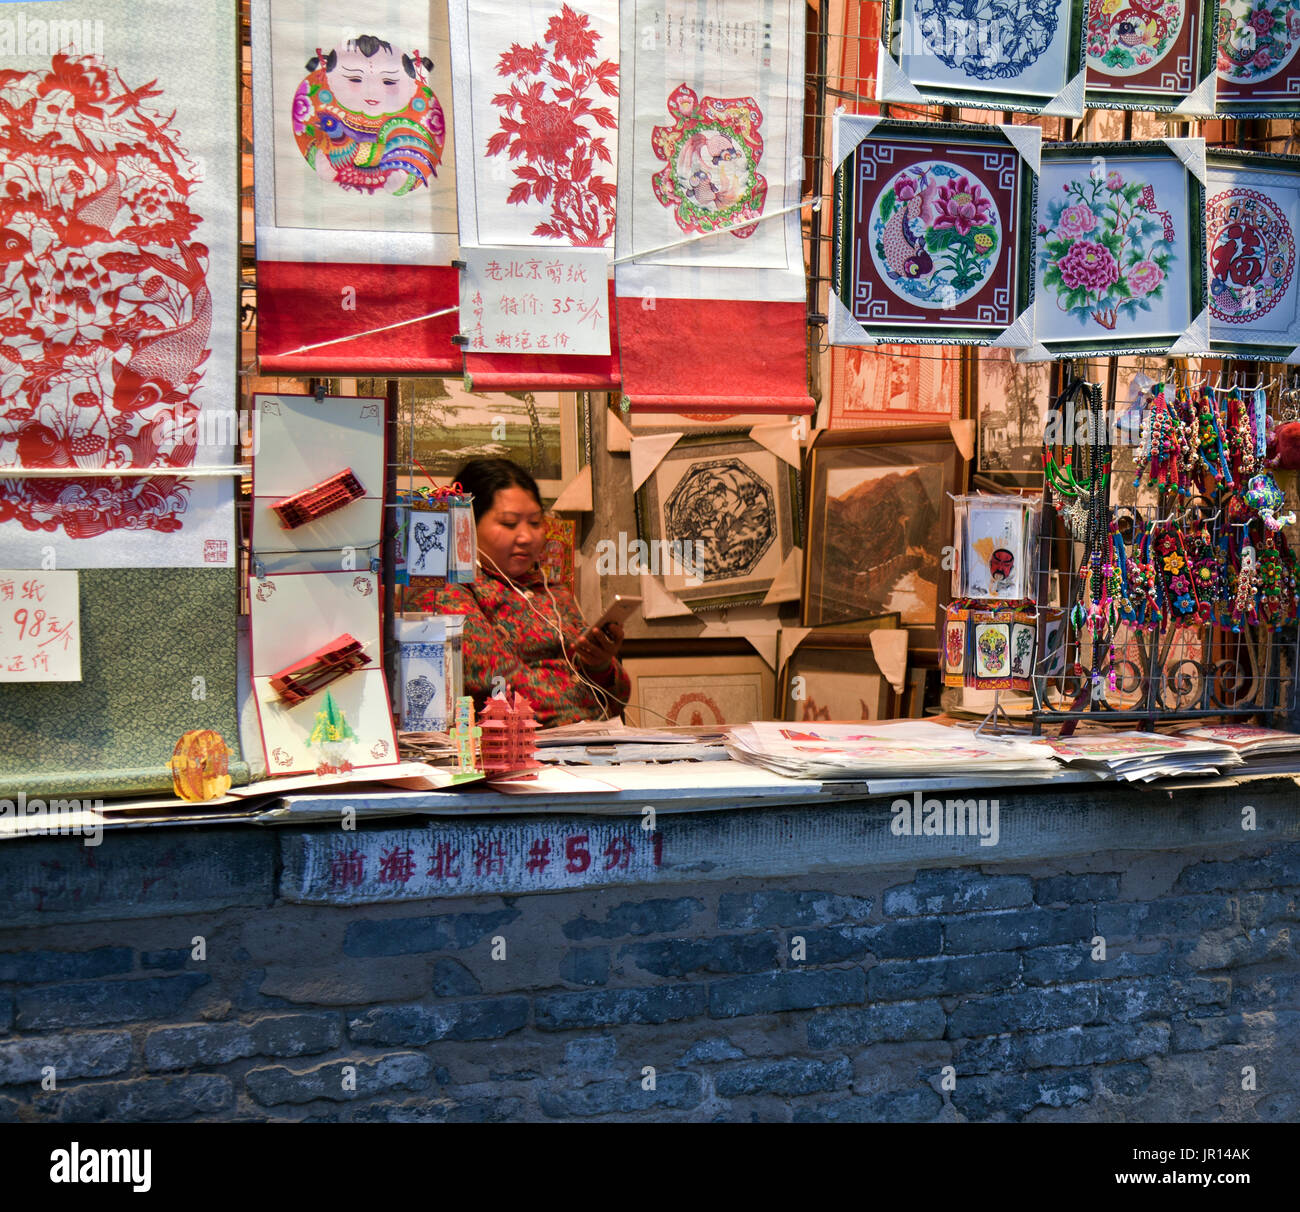 Woman on her cell phone at art souvenir stand, Shichahai (Houhai) Entertainment District at Twilight, Beijing, China. Stock Photo